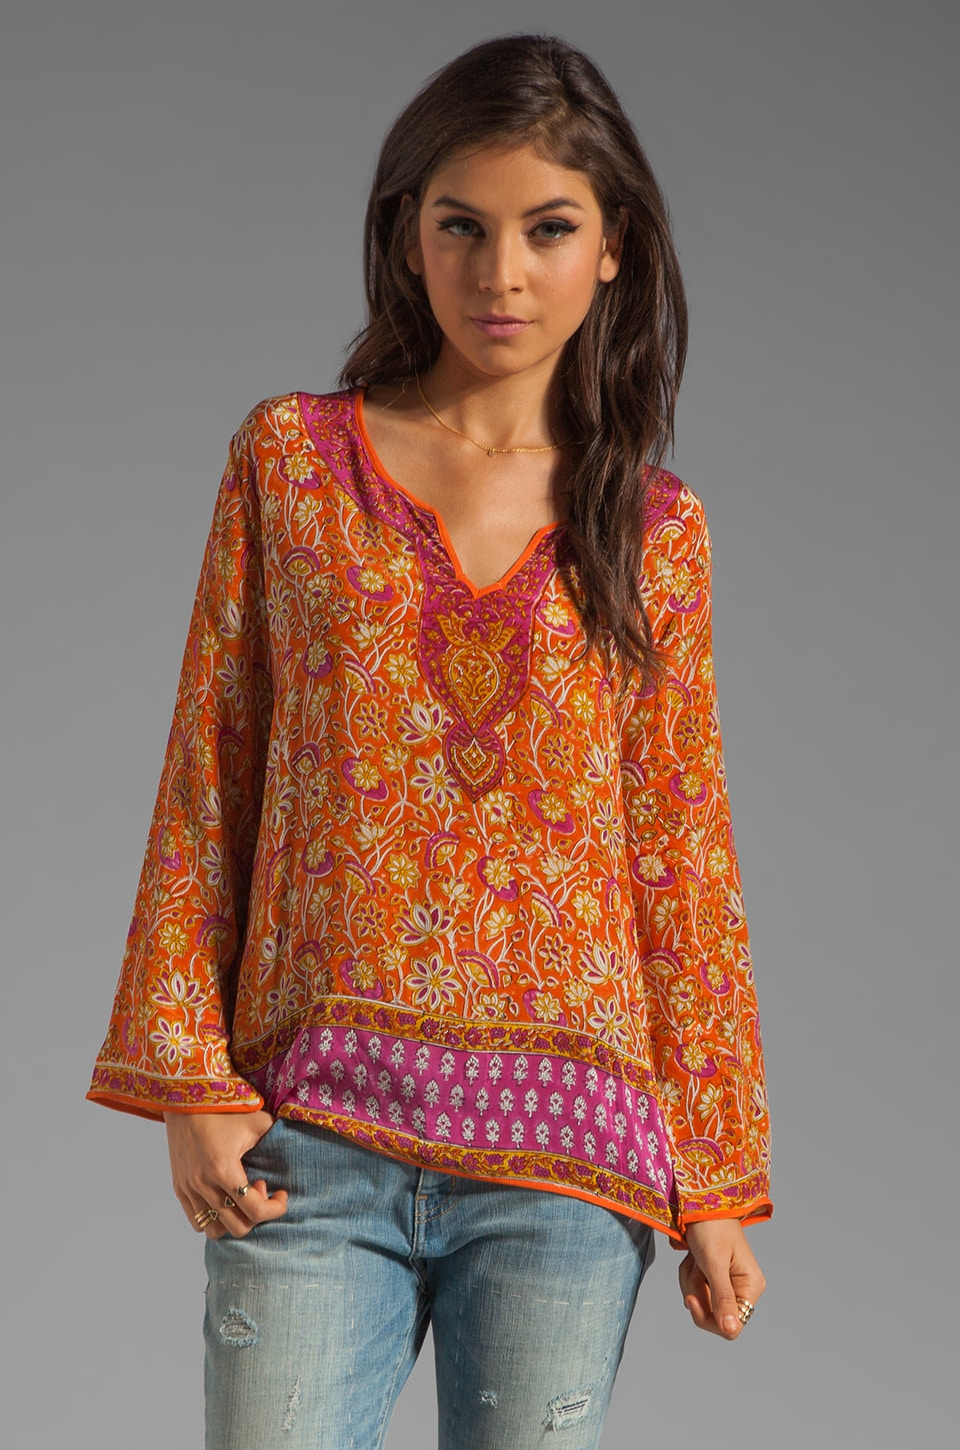 Tolani Rita Blouse in Fuchsia/Orange